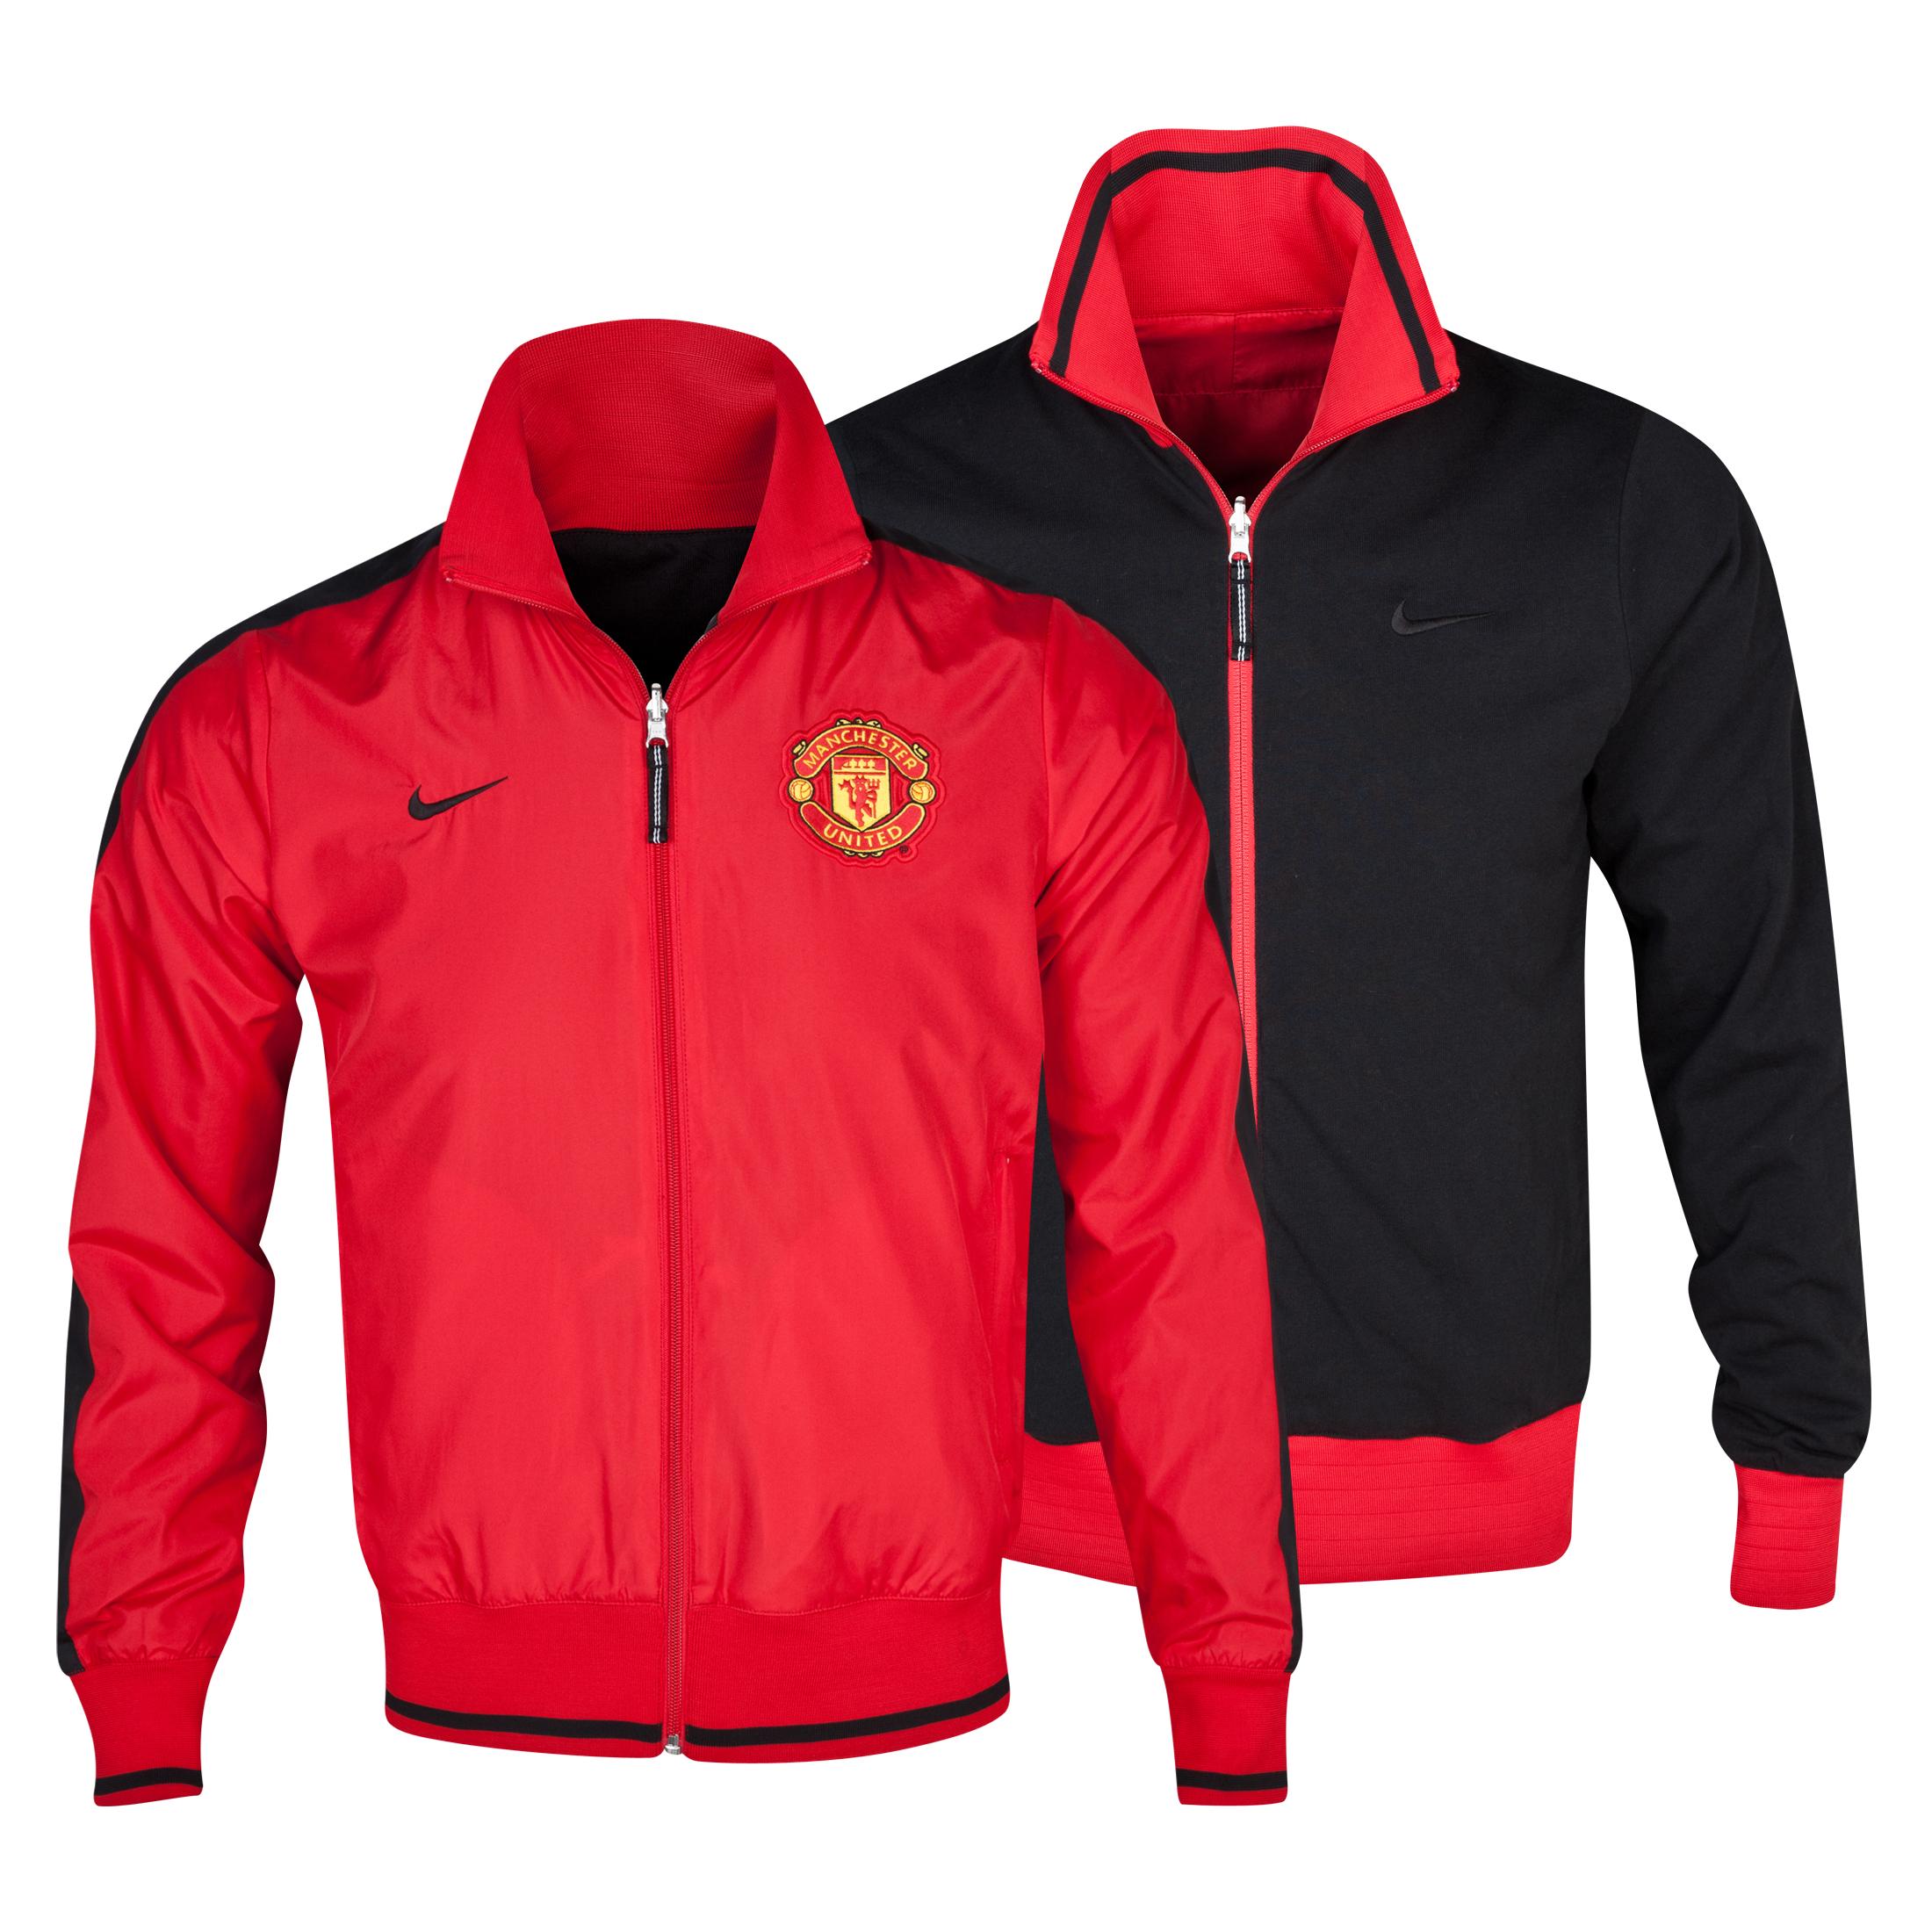 Manchester United Authentic Reversible Jacket - Diablo Red/Black Red